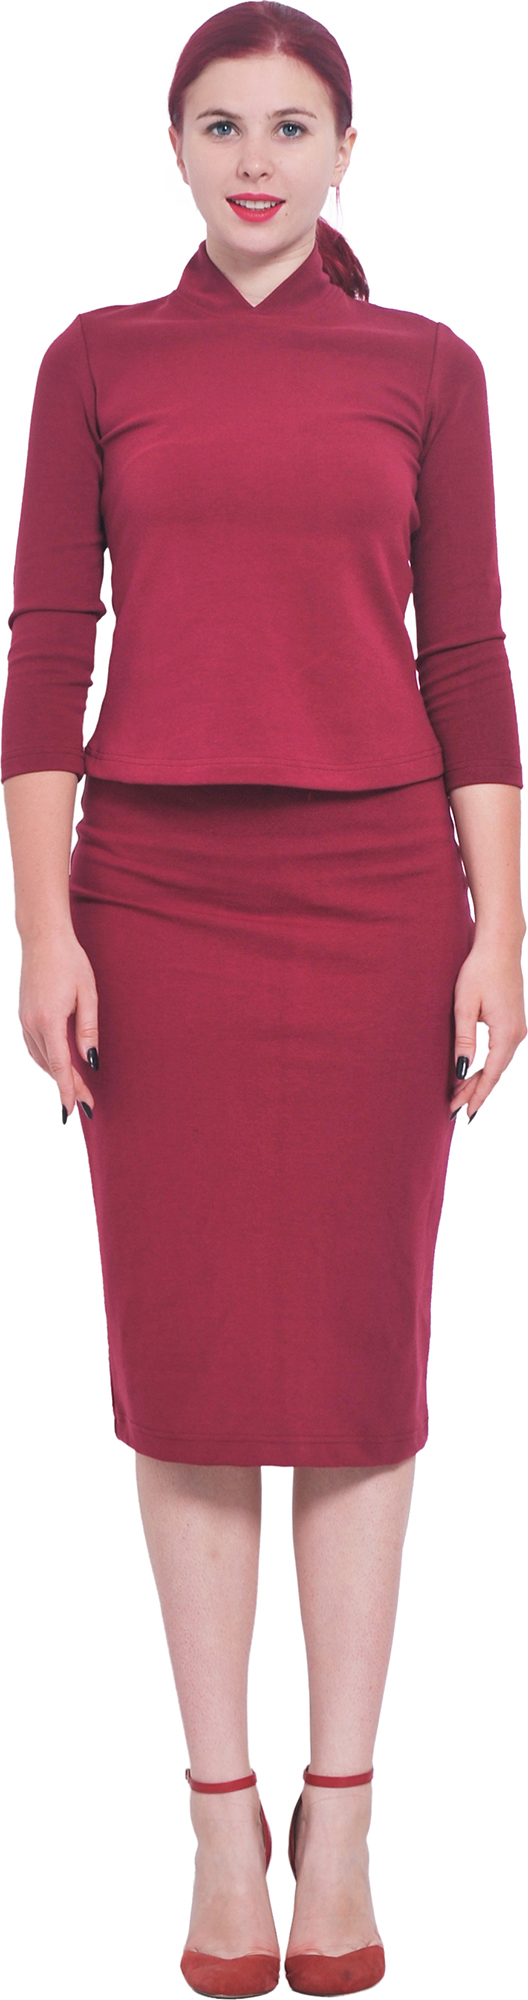 MARYCRAFTS WOMEN'S FITTED BODYCON PENCIL WORK OFFICE BUSINESS ...